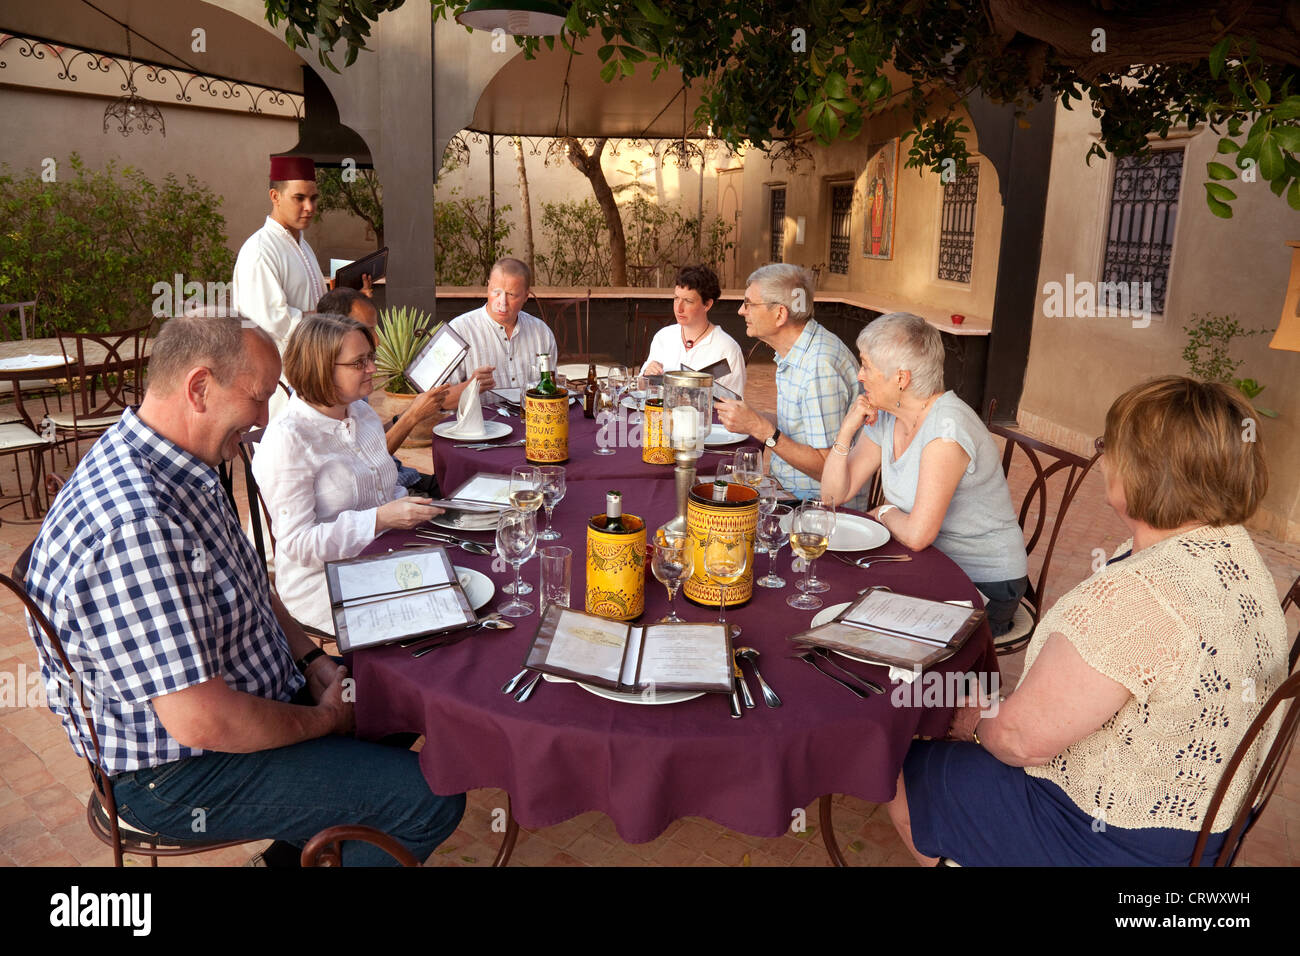 Hotel guests enjoying a meal at the Dar Zitoune Riad, Taroudant, Morocco Africa - Stock Image